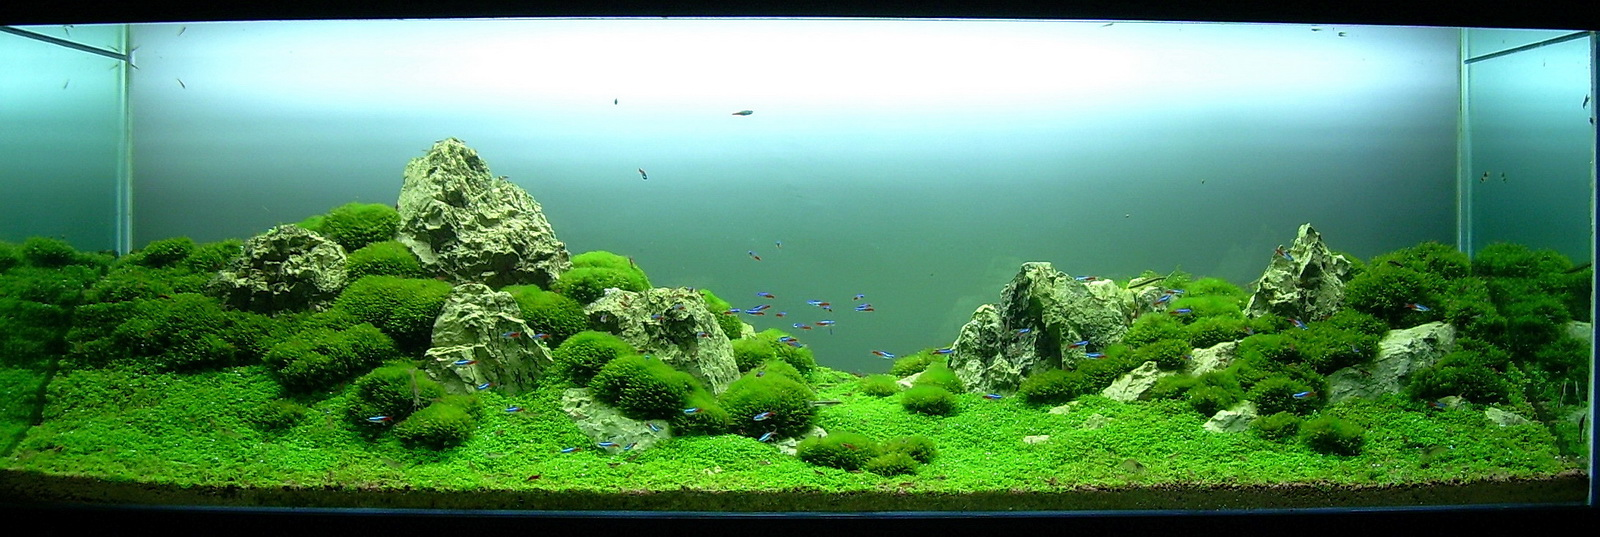 Takashi amano joe blogs - Aquascape espana ...